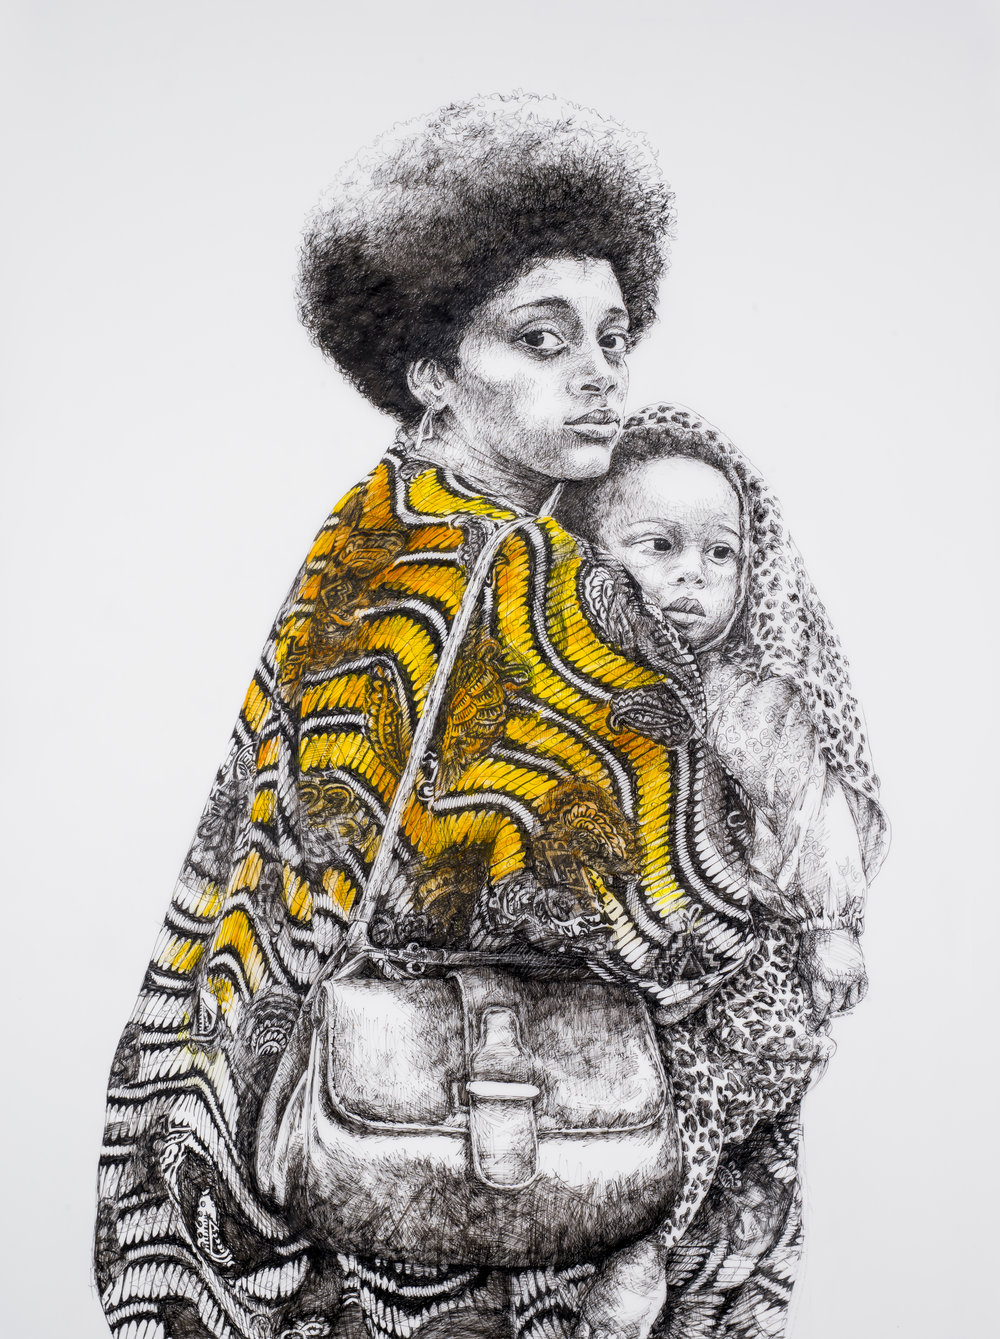 "Deborah Aschheim,  Mother and Child, Free Huey Rally, De Fremery Park, Oakland (after Ruth Marion-Baruch)  2017. The Black Panther Party formed in Oakland in 1966 demanding an end to oppression of African Americans, and calling for housing, education, jobs, and justice. ""The party is known mostly for its confrontational stances; and that's a good thing – to be confrontational against evil and violence. The kinds of problems that the black community suffers: unequal levels of imprisonment, unequal levels of access to resources, poor health. The Black Panther Party tried to model for the community some of the possible solutions that were not capitalist-oriented."" Kathleen Cleaver, first Communications Secretary for the Black Panther Party. Image courtesy the artist and the San Francisco Arts Commission's Art on Market Street Program."